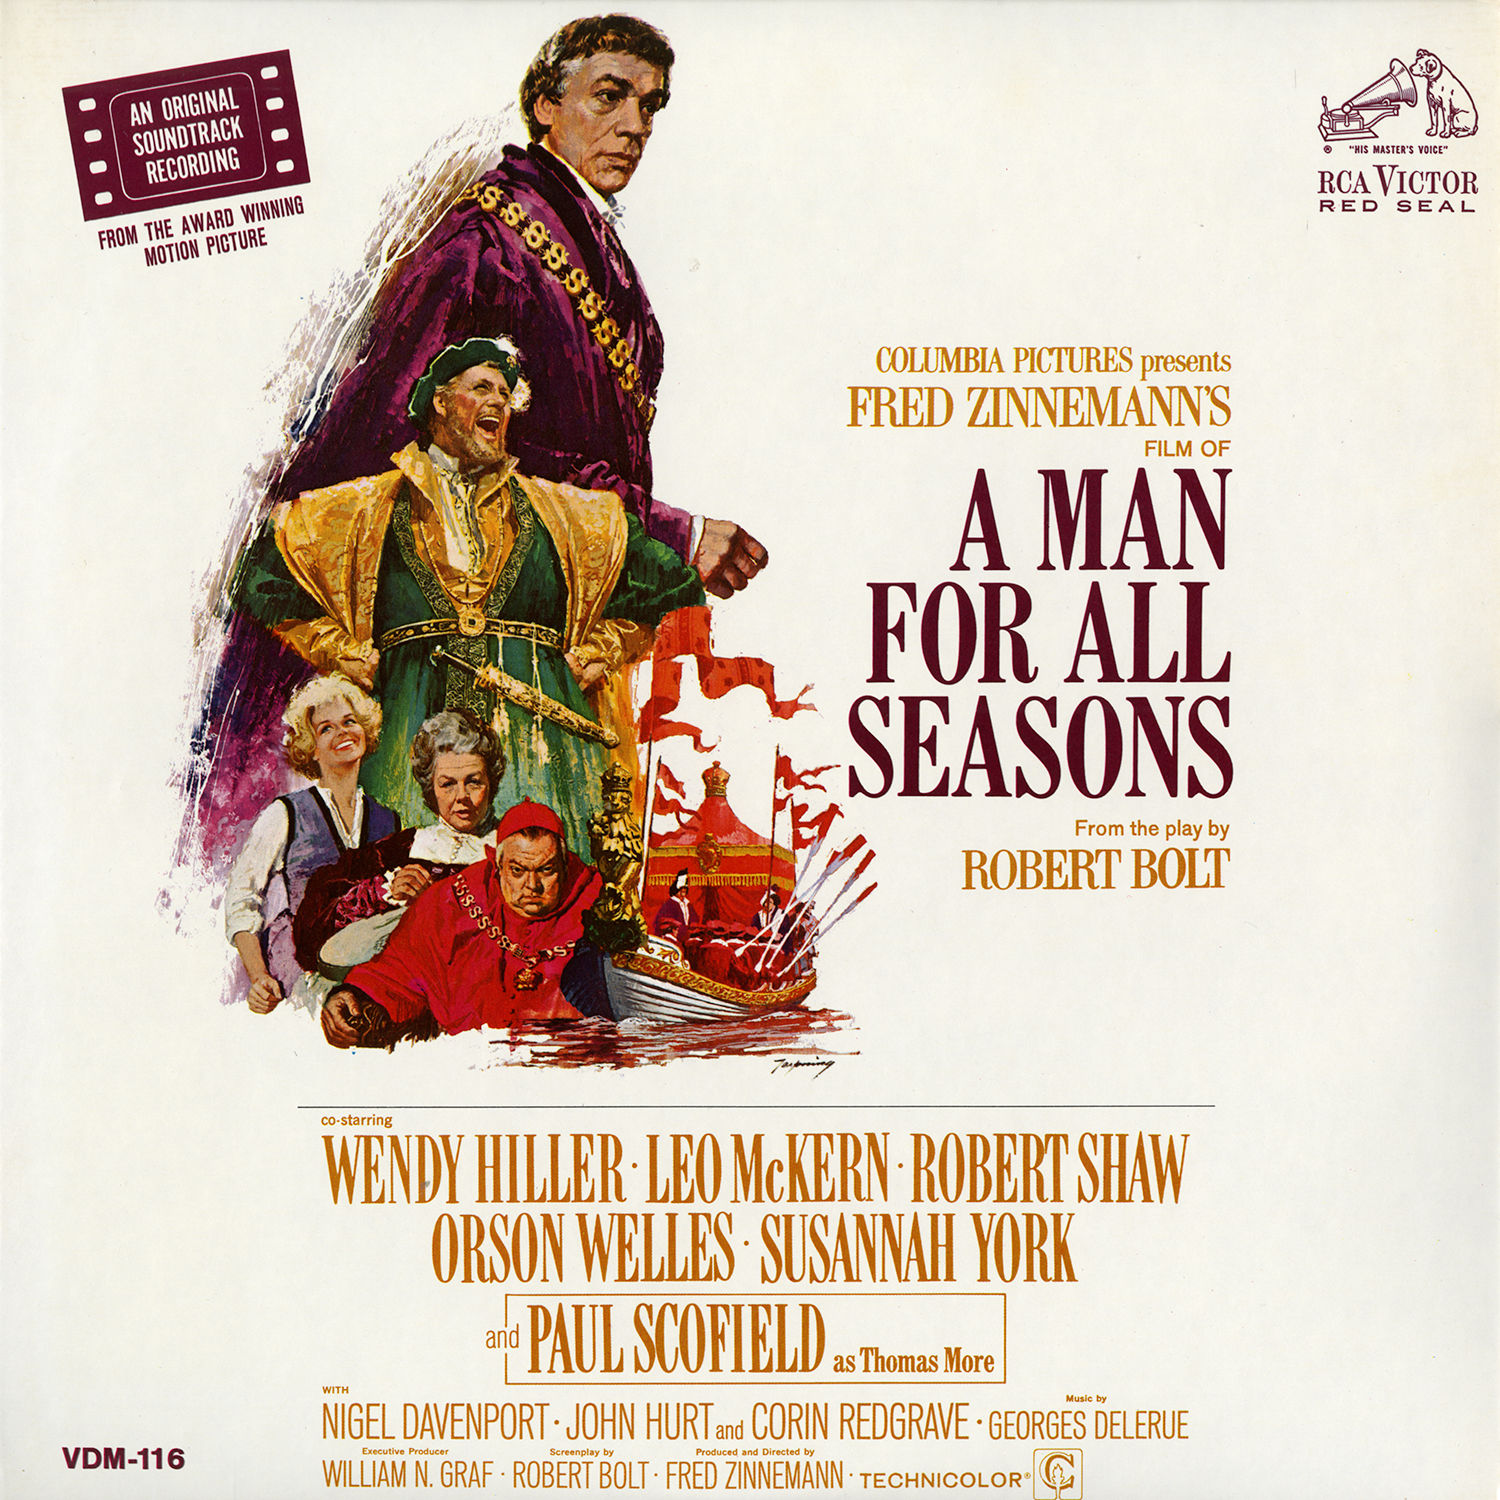 a review of the play a man of all seasons In a man for all seasons, william roper serves as a counterpoint to more at the end of the play, he wishes us good health and long life.